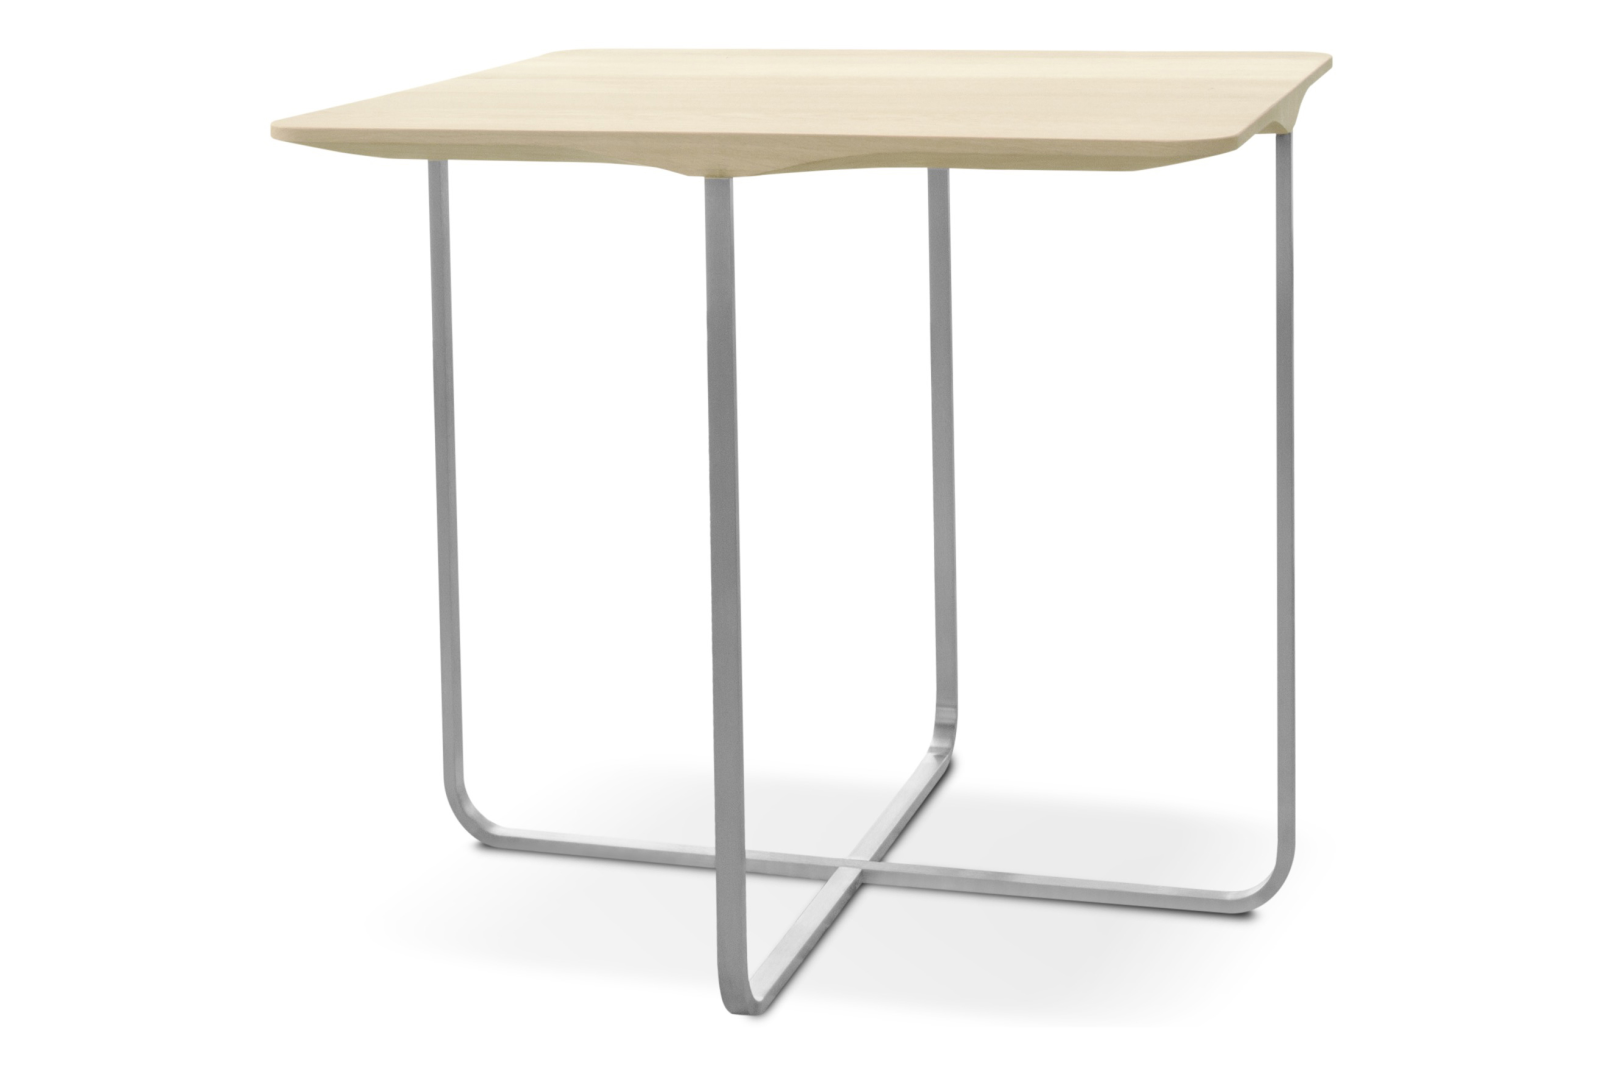 Flint Square Coffee Table White Stained Ash, Small